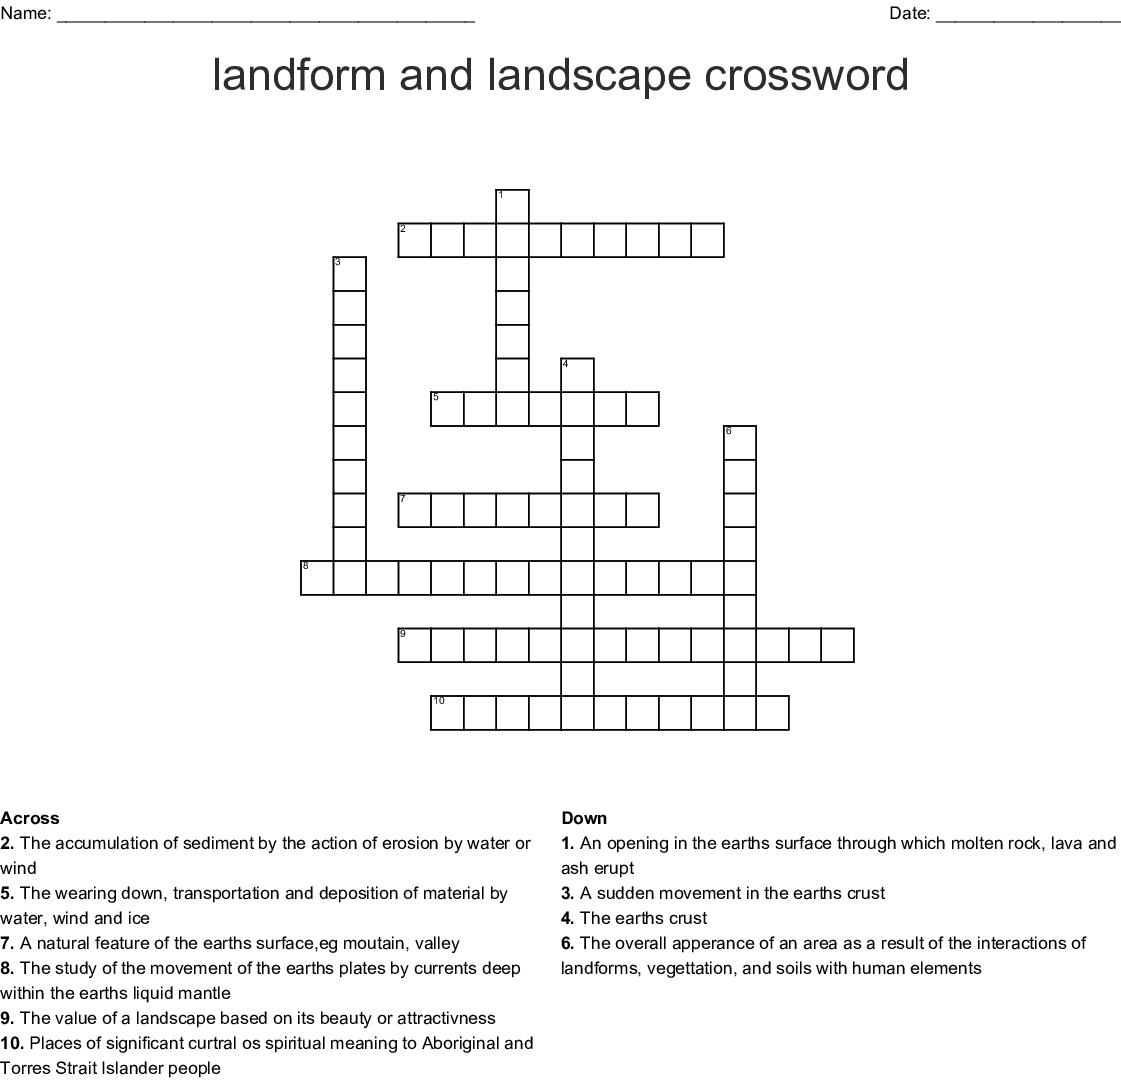 Landform And Landscape Crossword